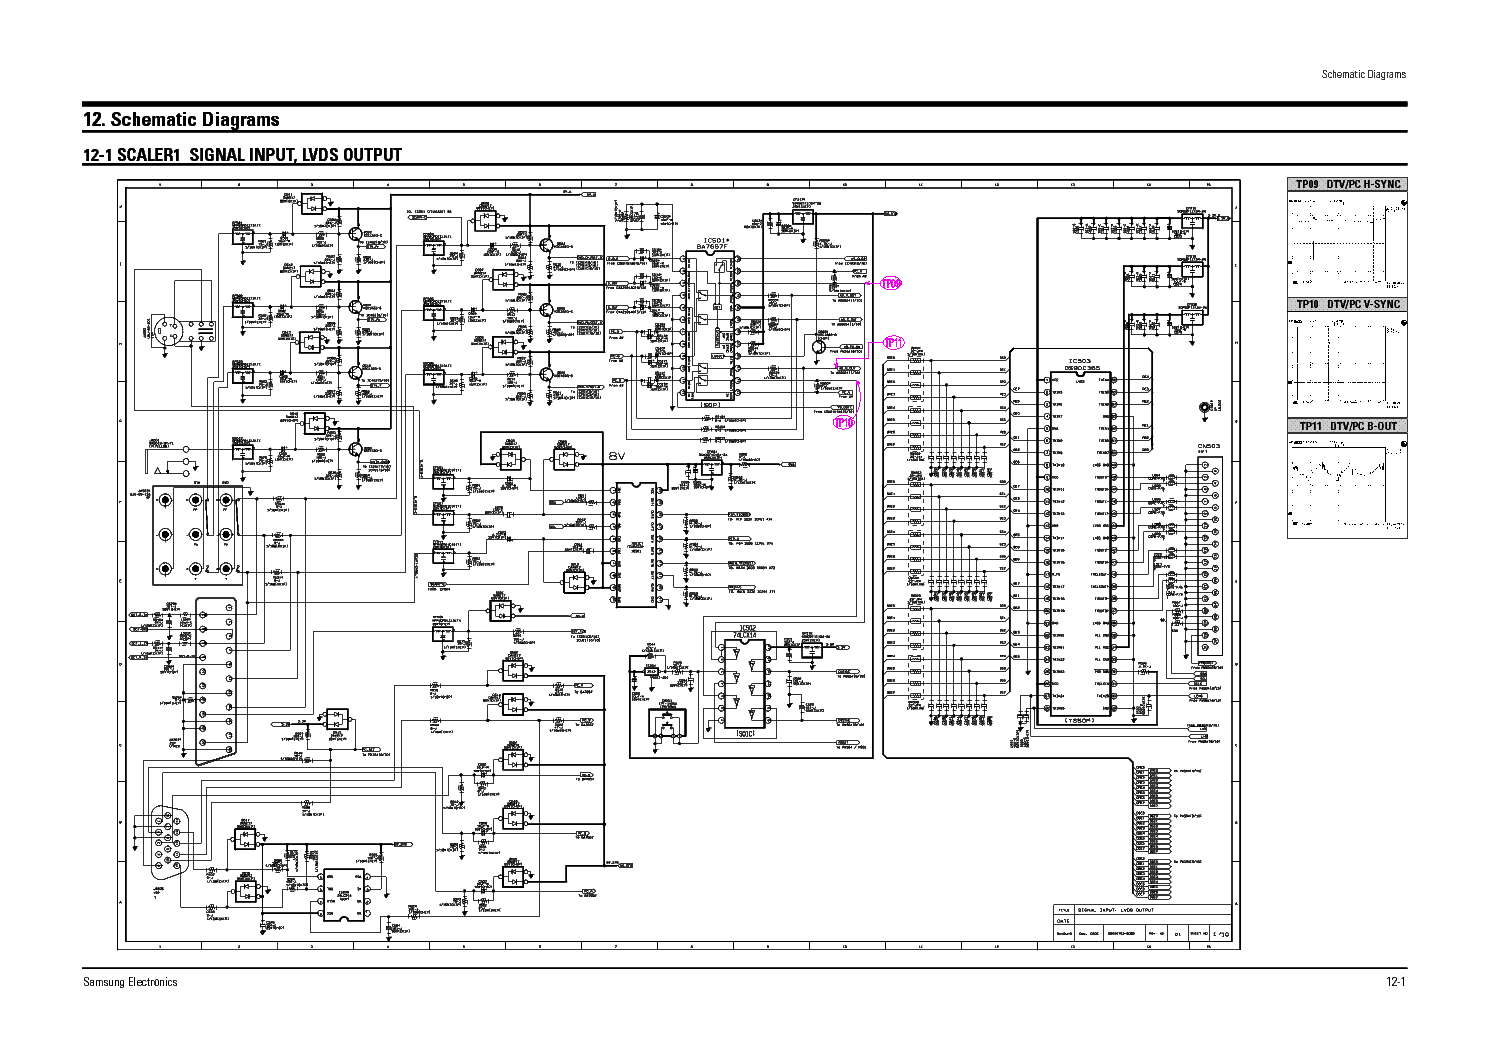 Samsung Tv Schematic Diagrams Archive Of Automotive Wiring Diagram T V Circuit Free Download Preview Ps50 Plazma Schema Electronique Pinterest Rh Com